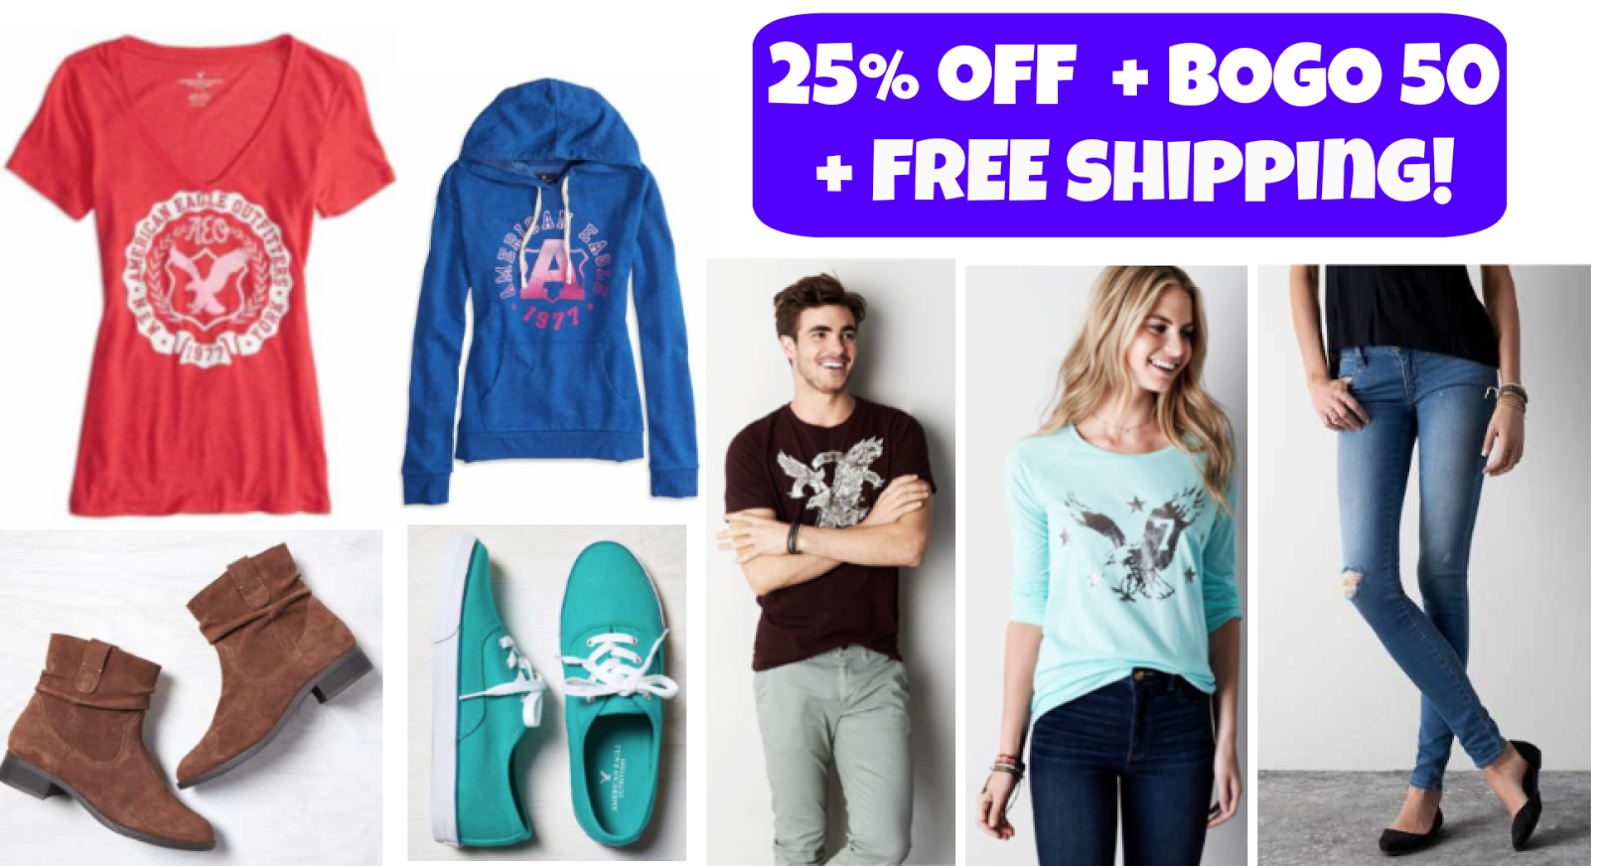 http://www.thebinderladies.com/2014/09/americaneaglecom-free-shipping-25-off.html